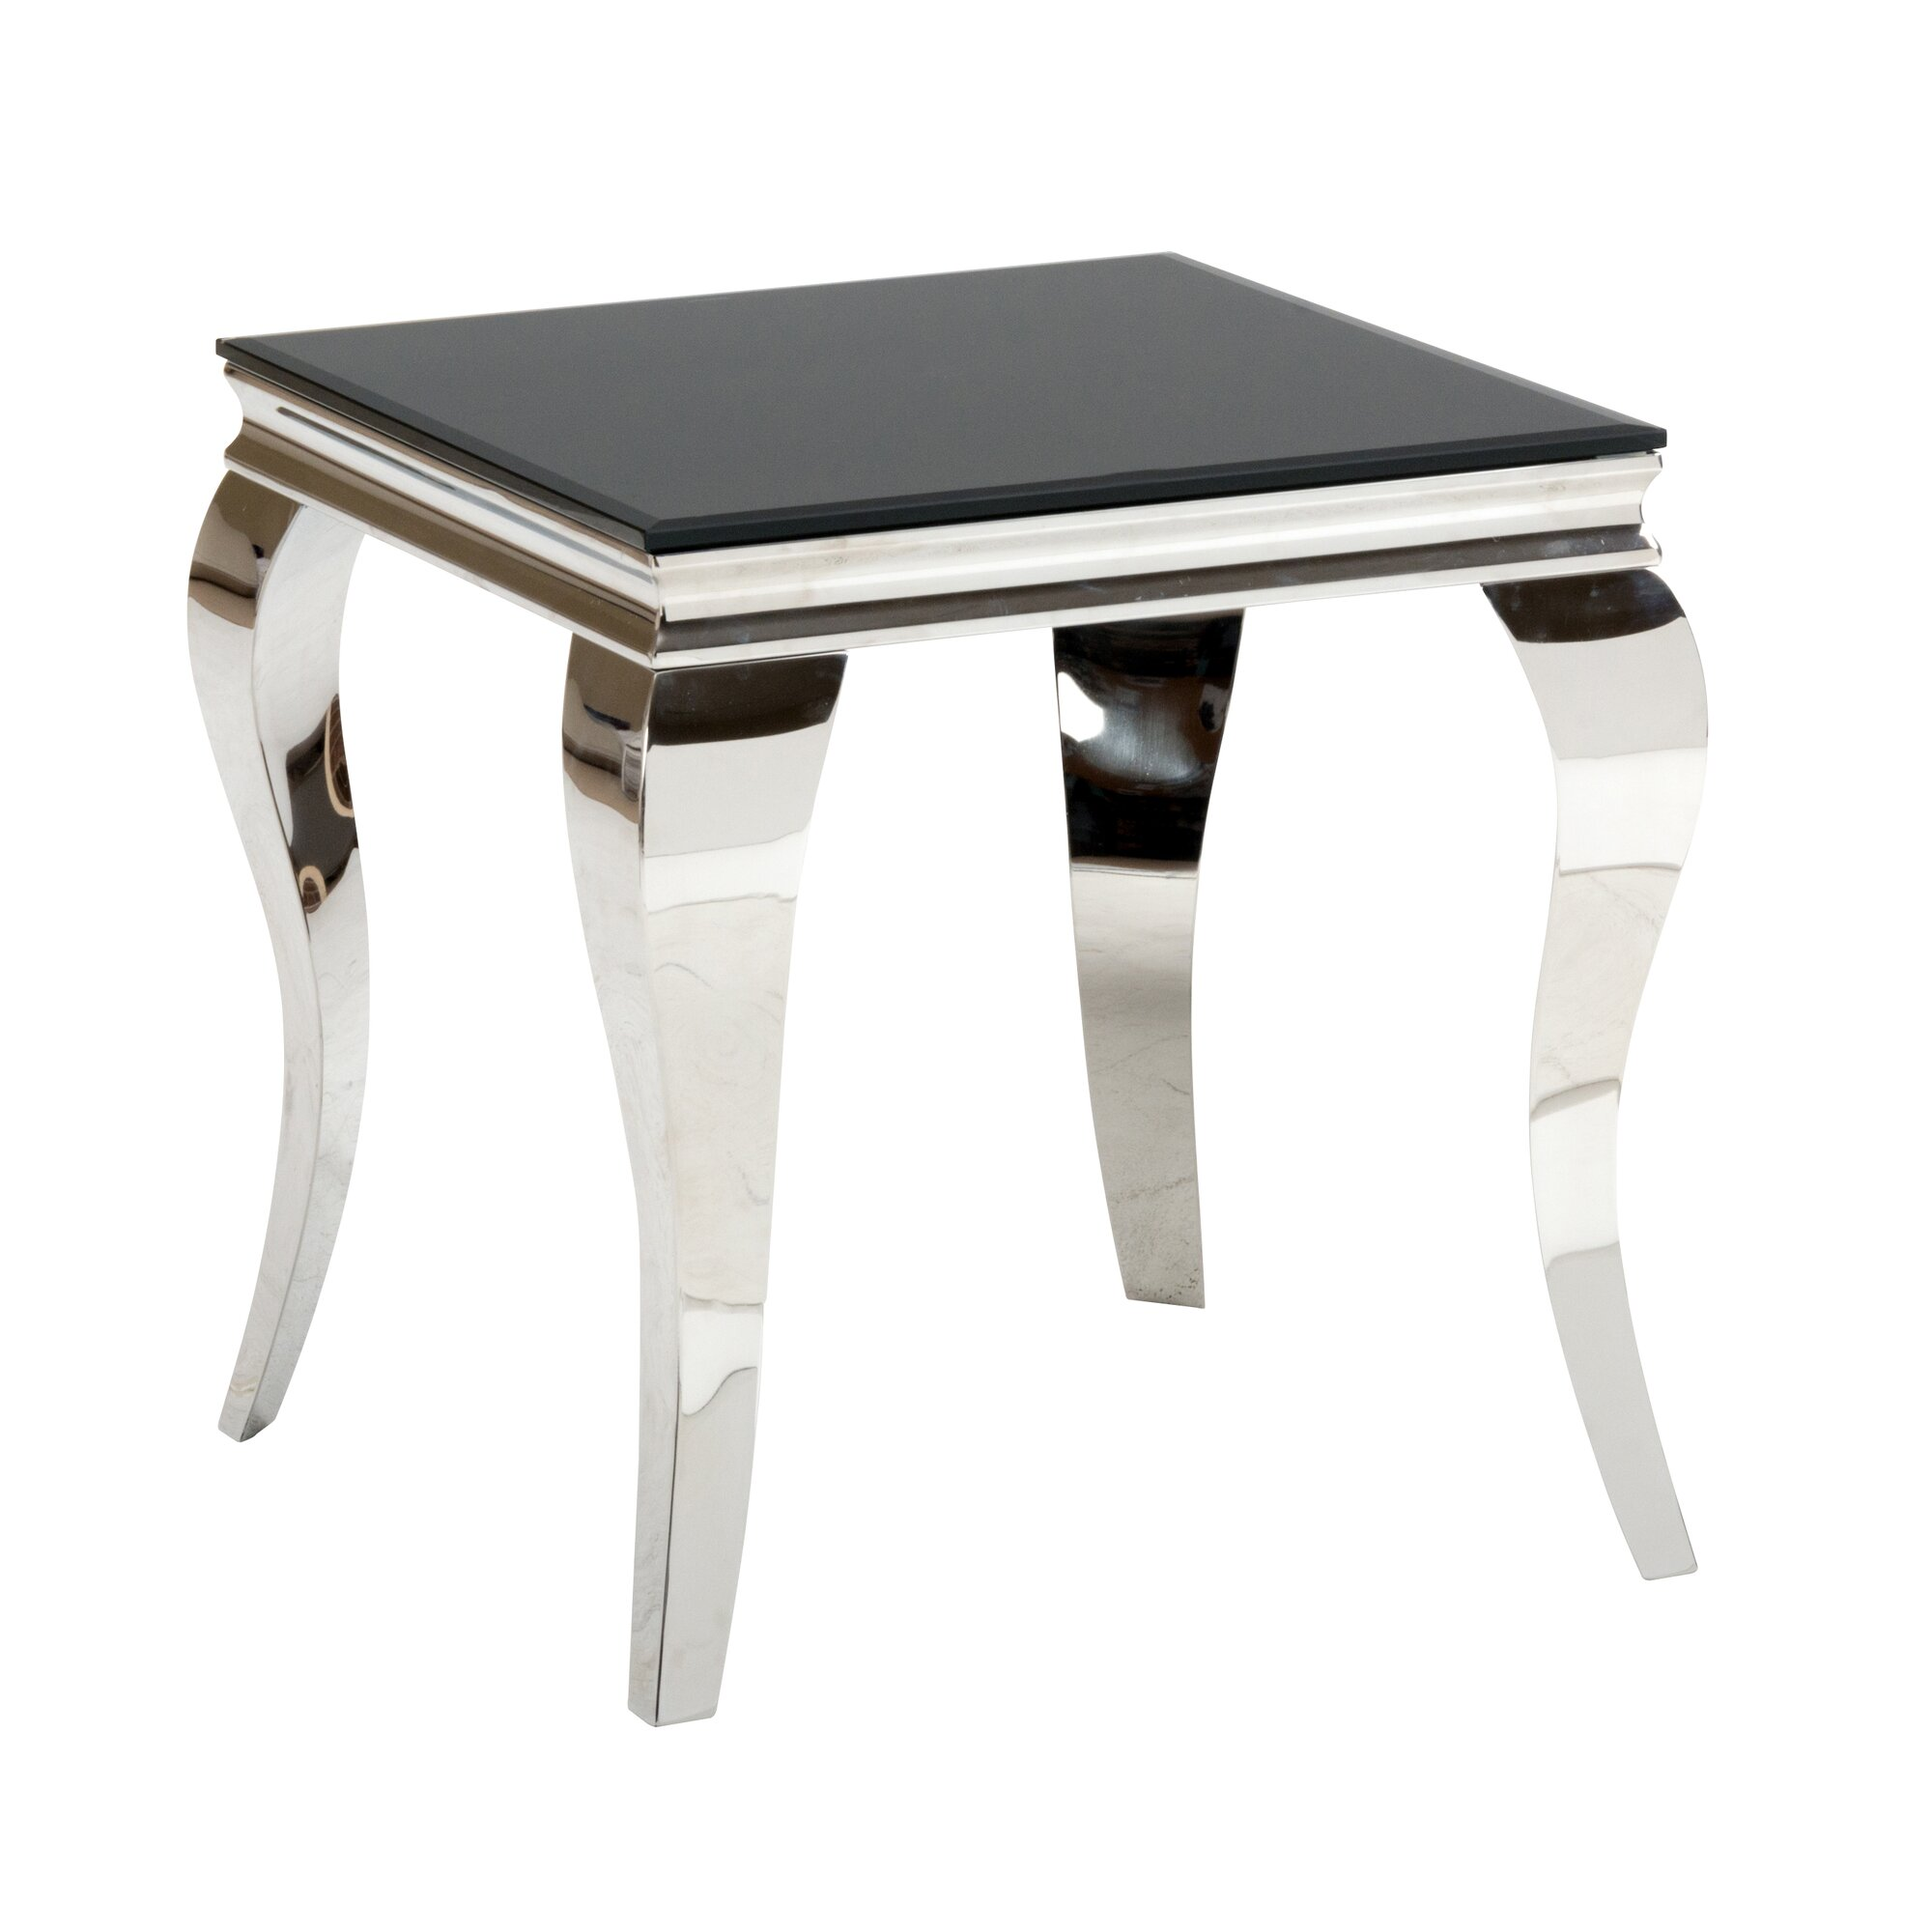 Jofran Tuxedo End Table amp Reviews Wayfairca : TuxedoEndTable from www.wayfair.ca size 2000 x 2000 jpeg 149kB